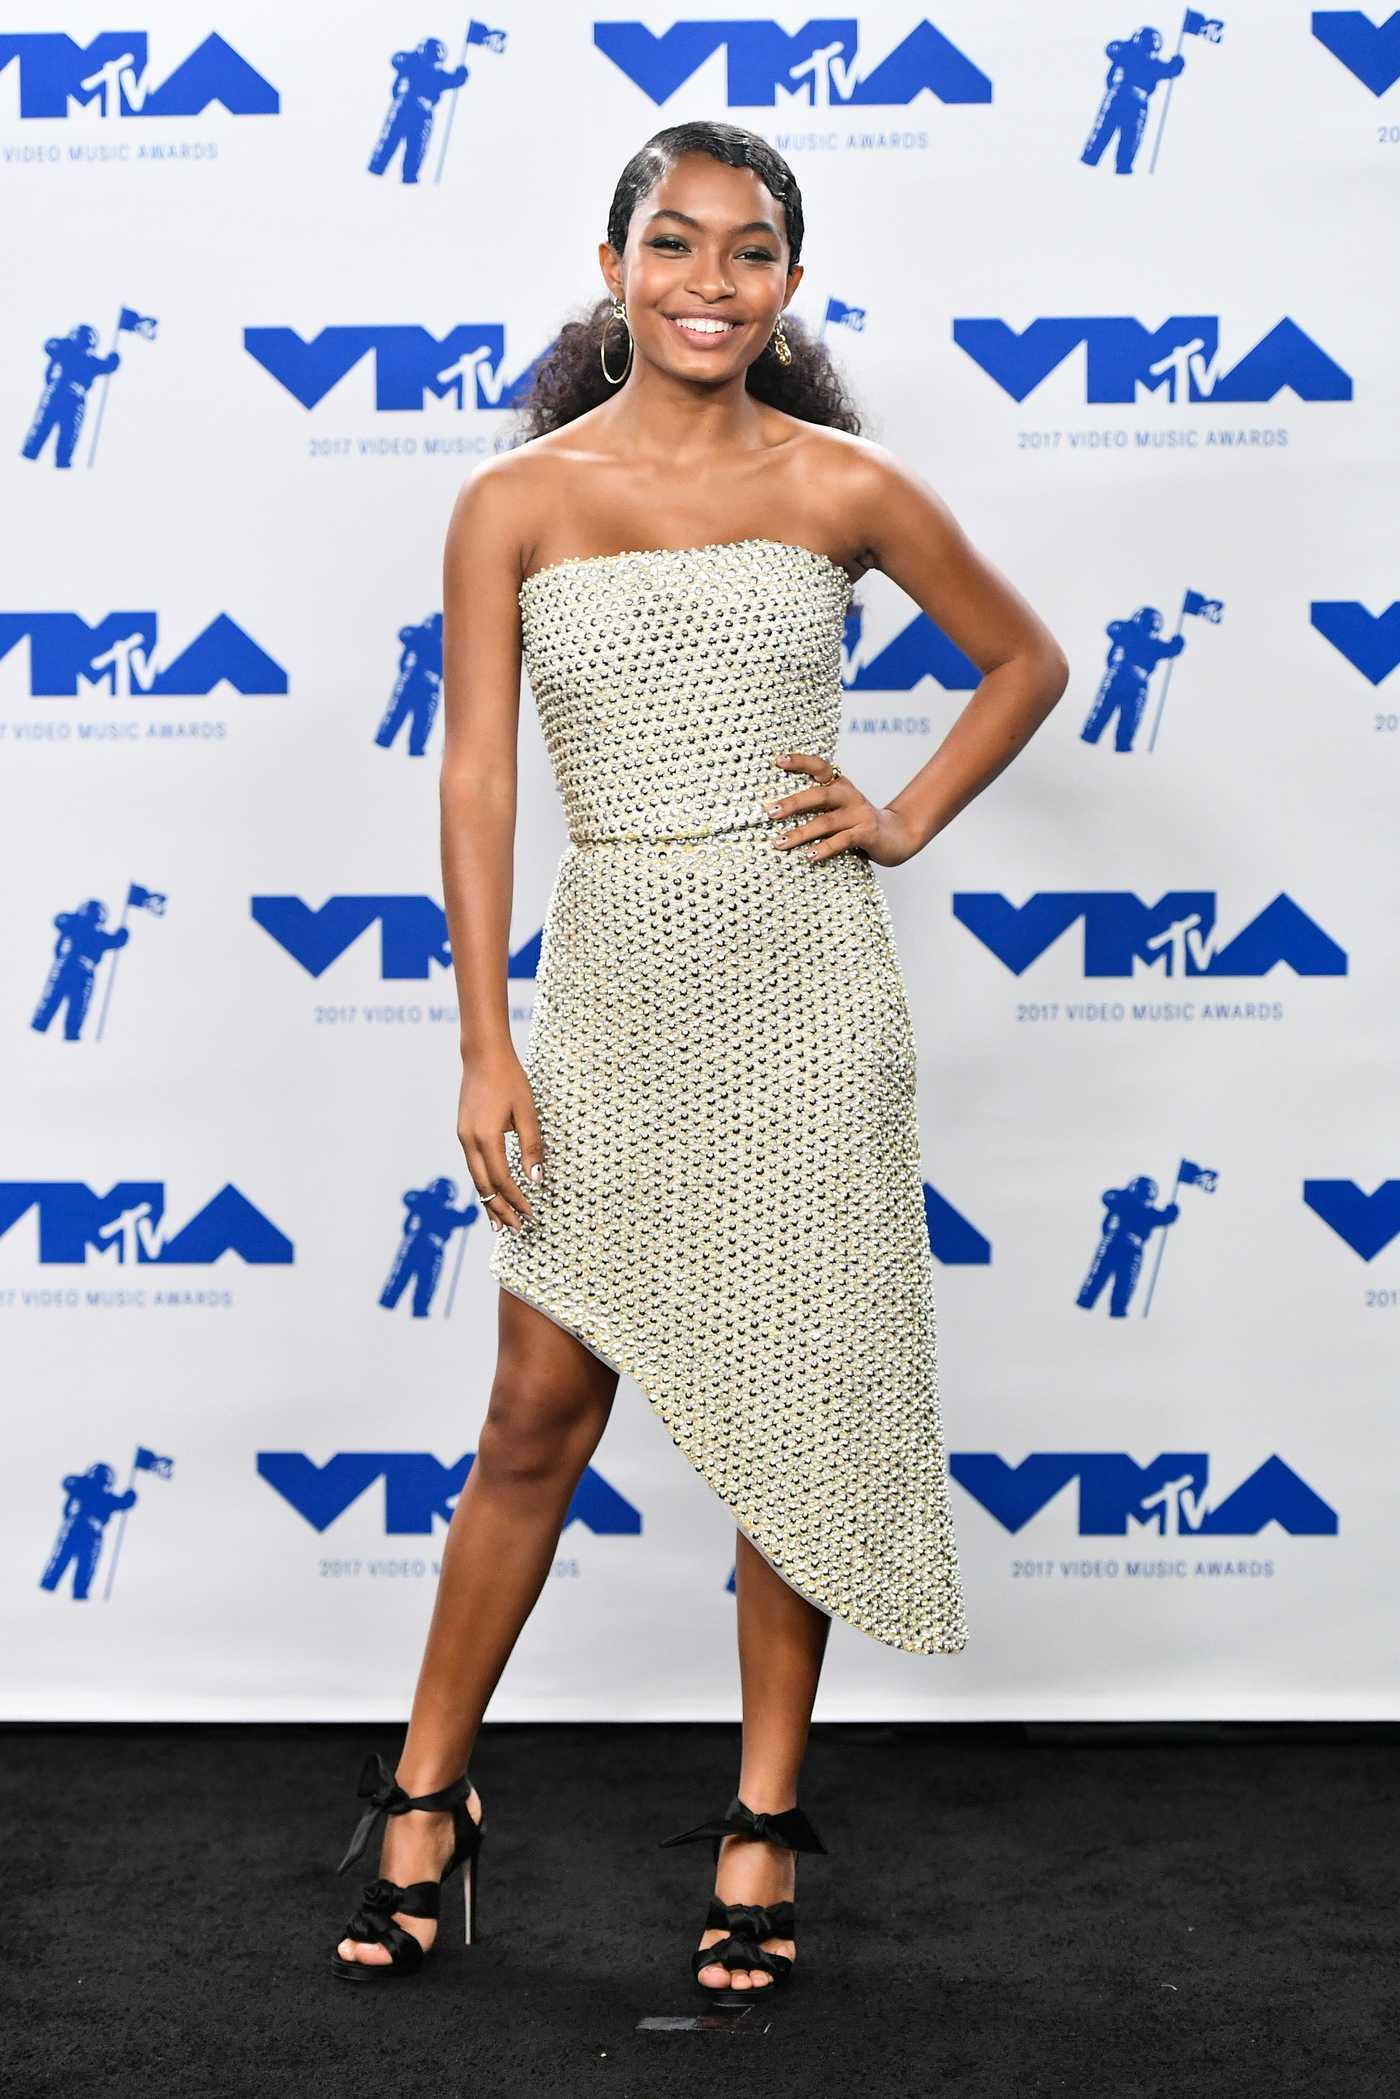 Yara Shahidi at the 2017 MTV Video Music Awards in Los Angeles 08/27/2017